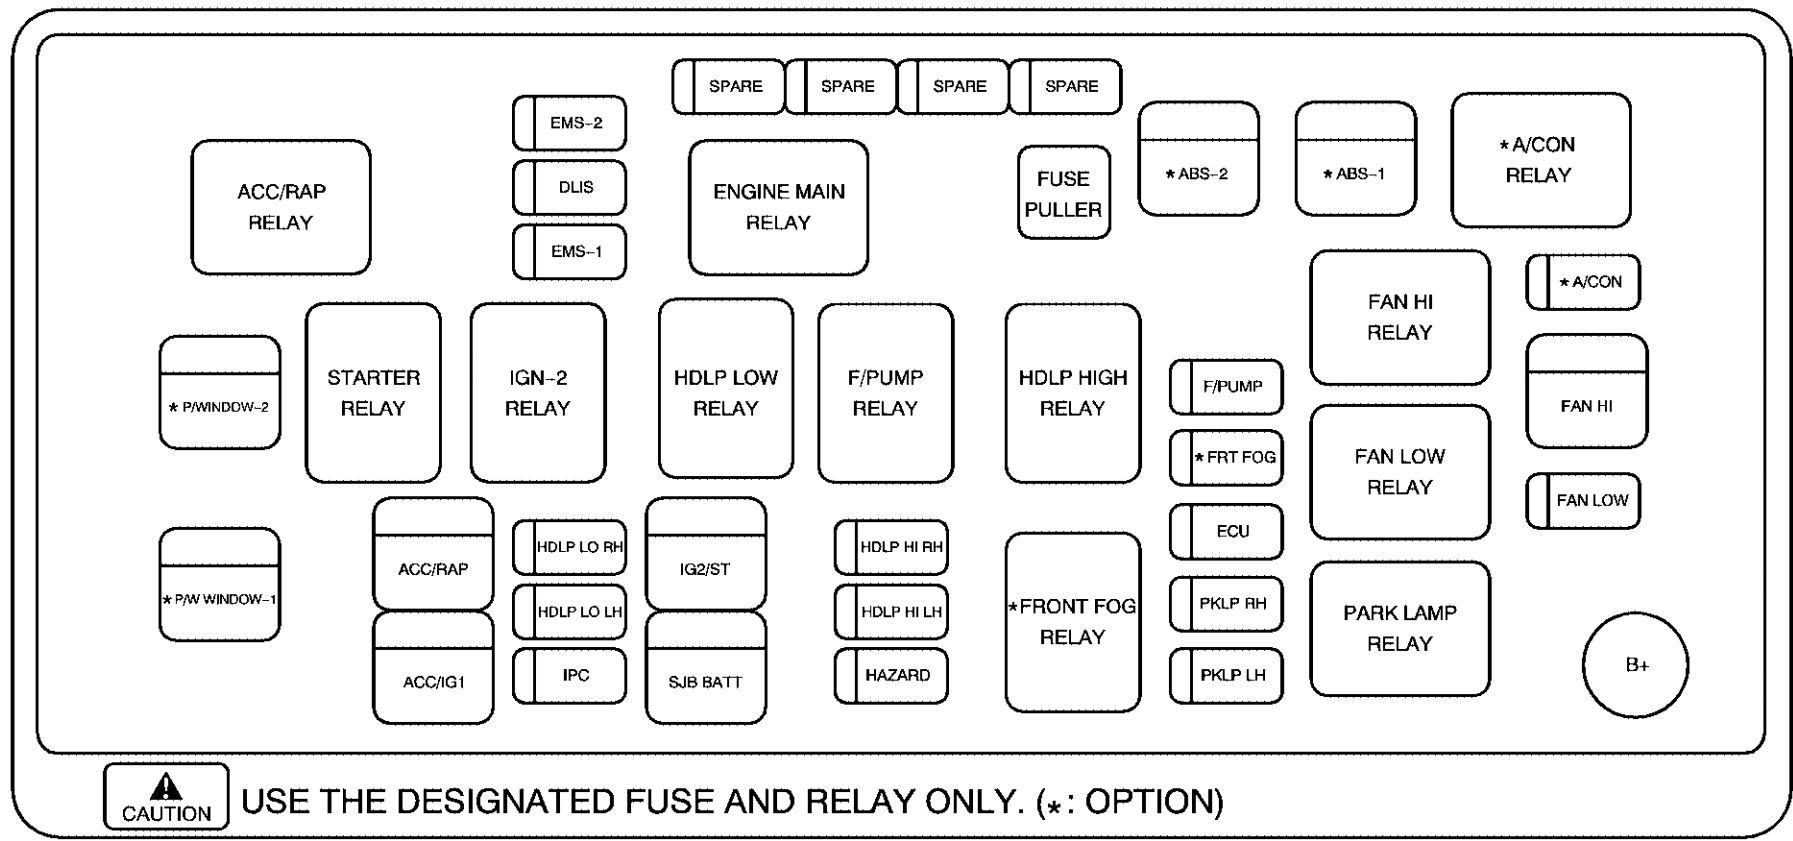 small resolution of 2009 chevy aveo fuse diagram wiring diagram used 2009 chevy aveo fuse box location 2004 chevy